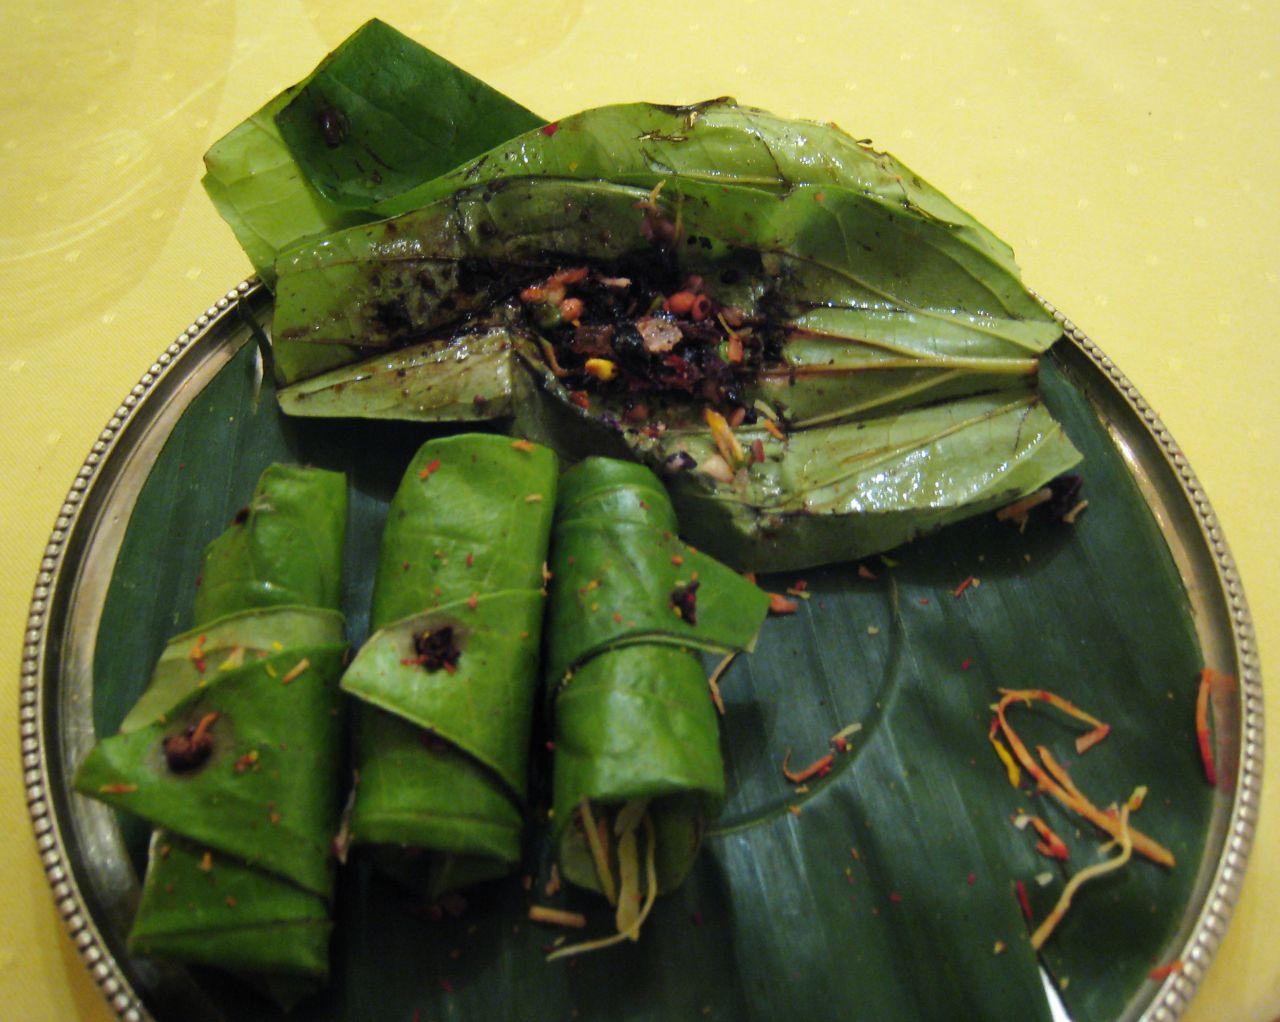 Paan is a preparation of betel leaf with areca nut and a number of spices, including for example menthol and tobacco. Paan is chewed and finally swallowed - or spat out.